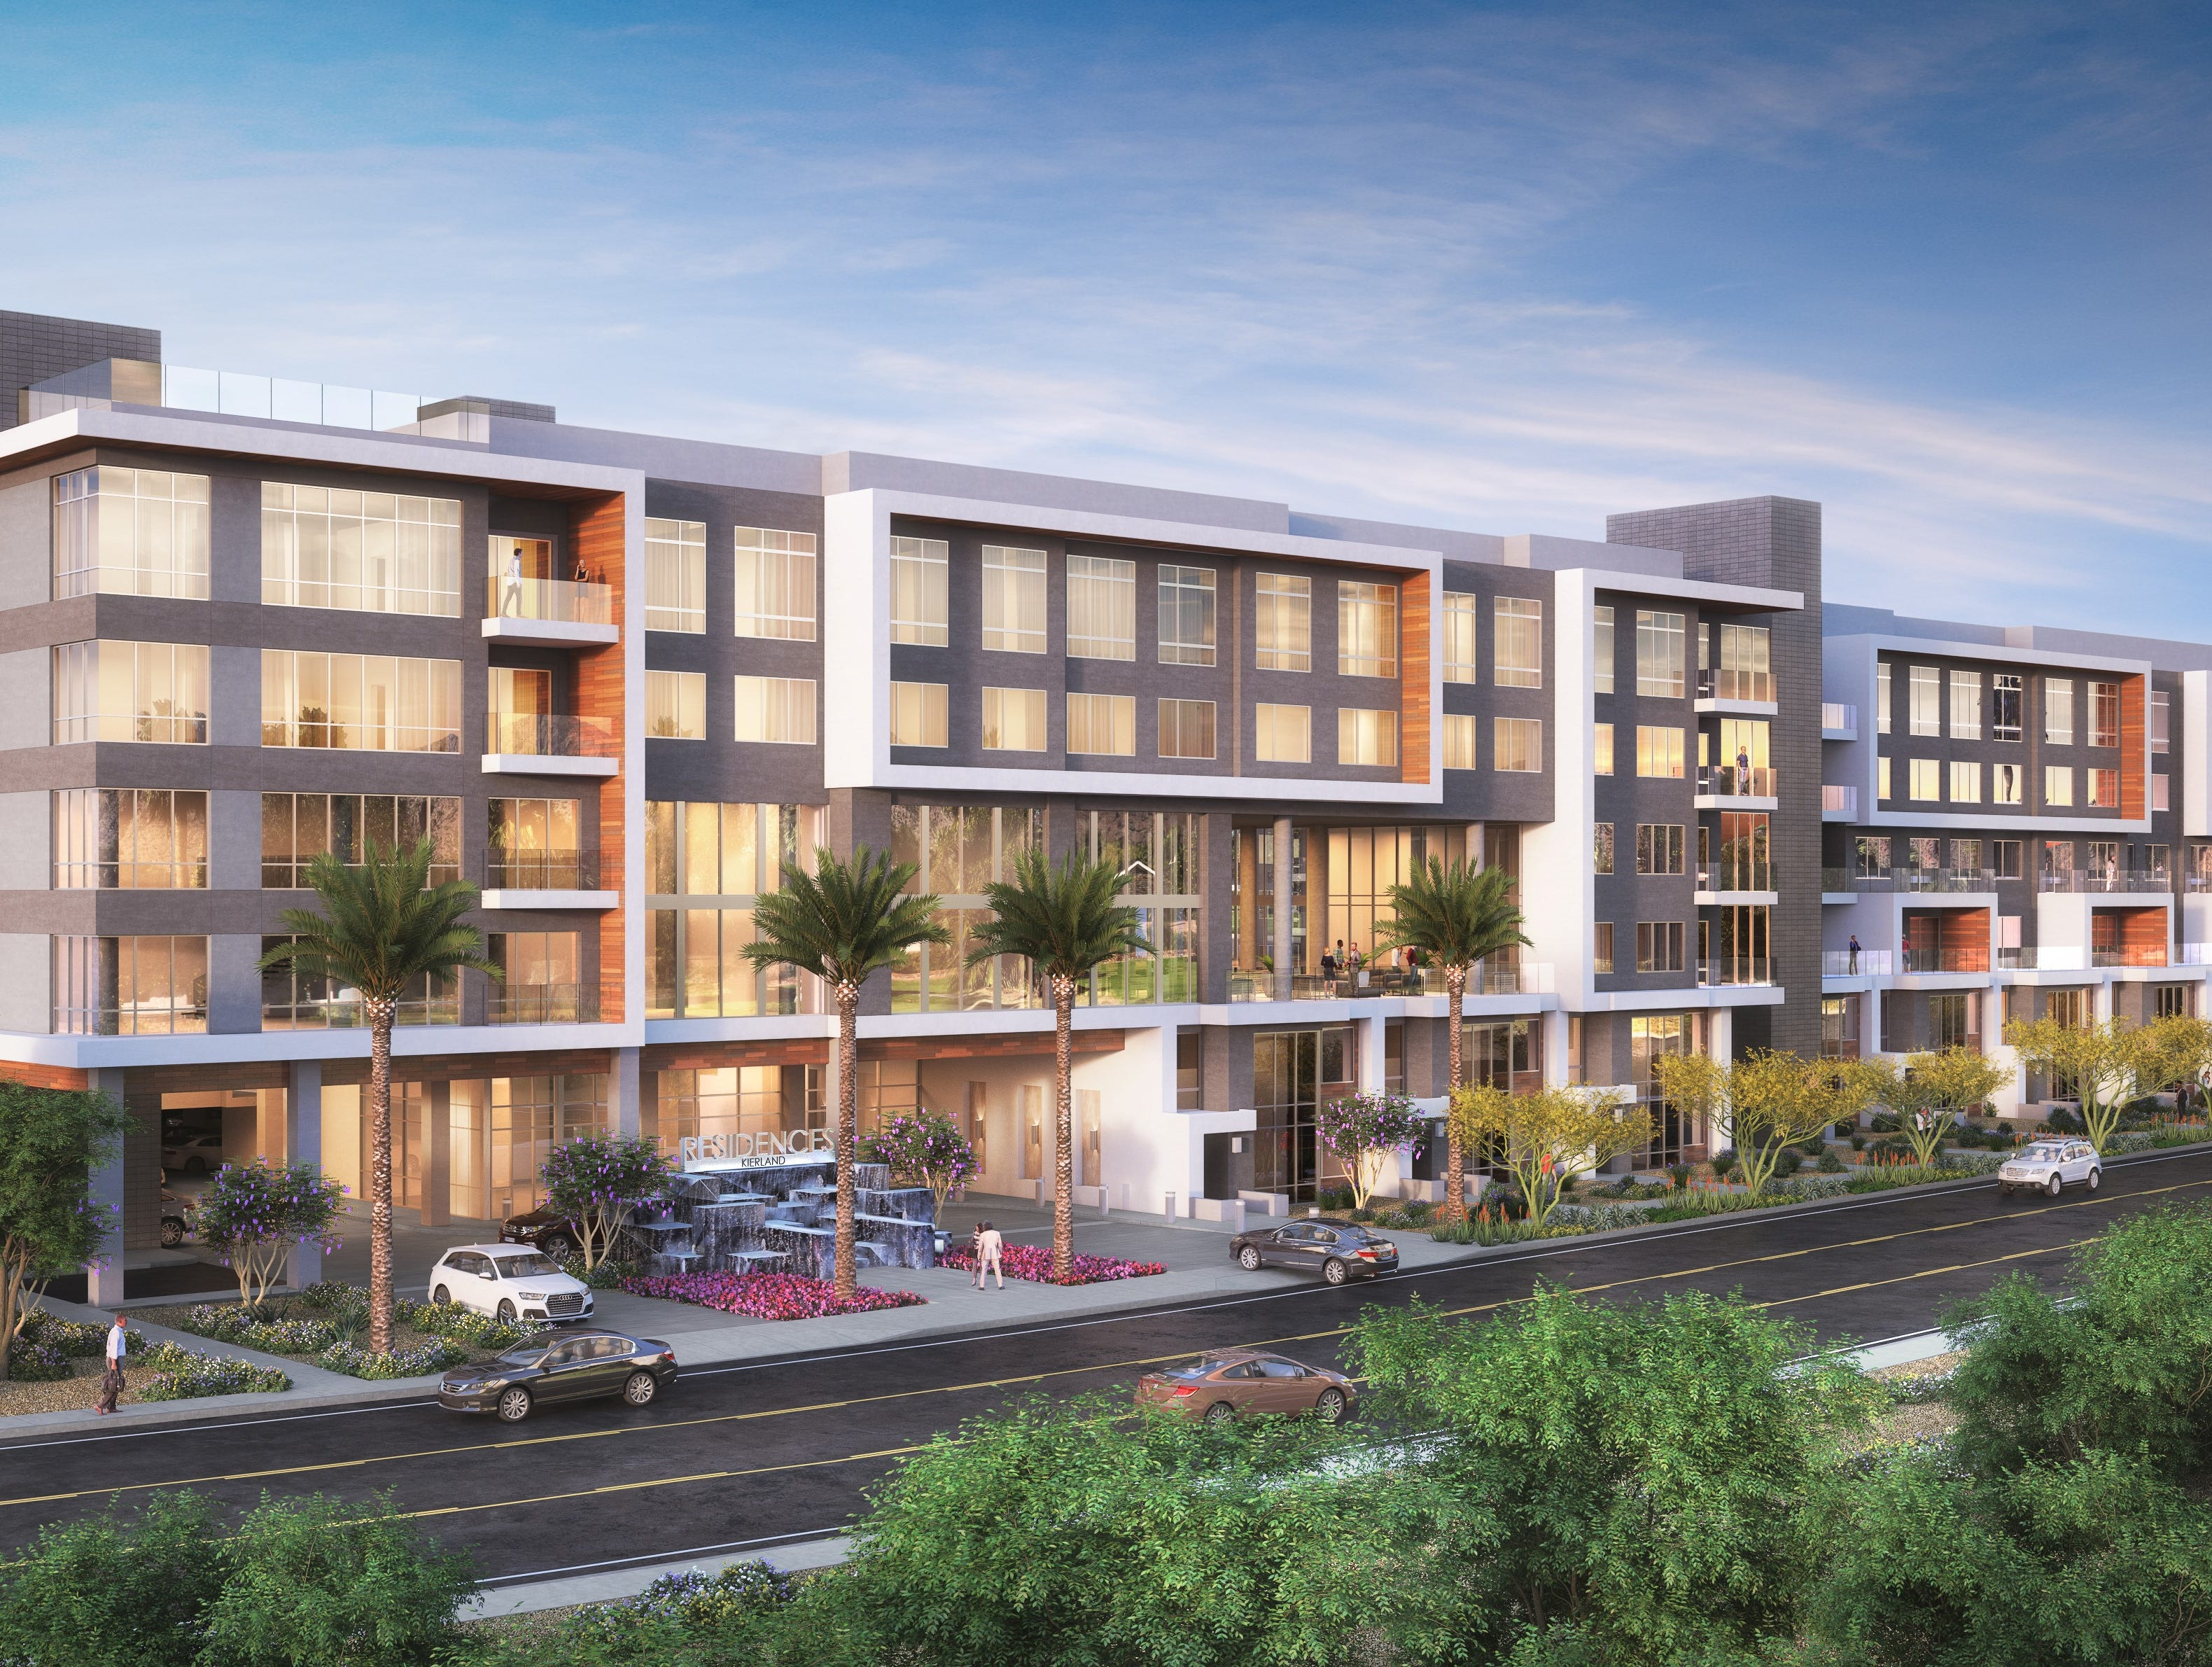 New apartments planned for Scottsdale's Kierland